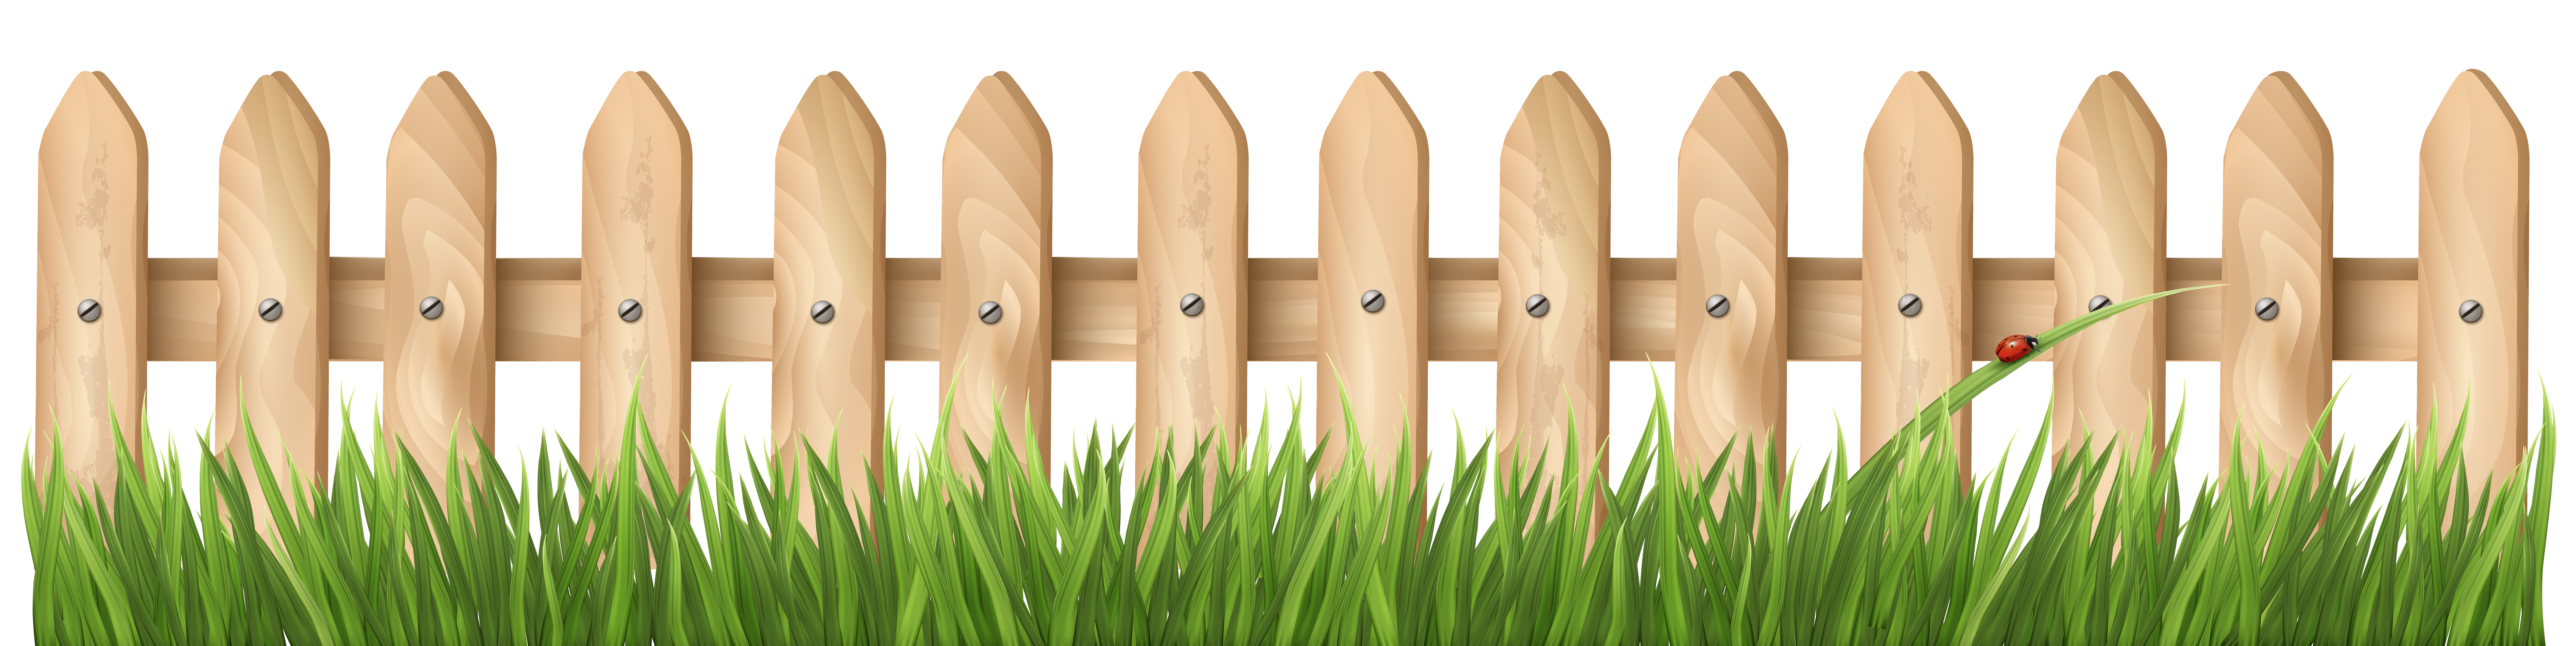 Fence Clipart Images.